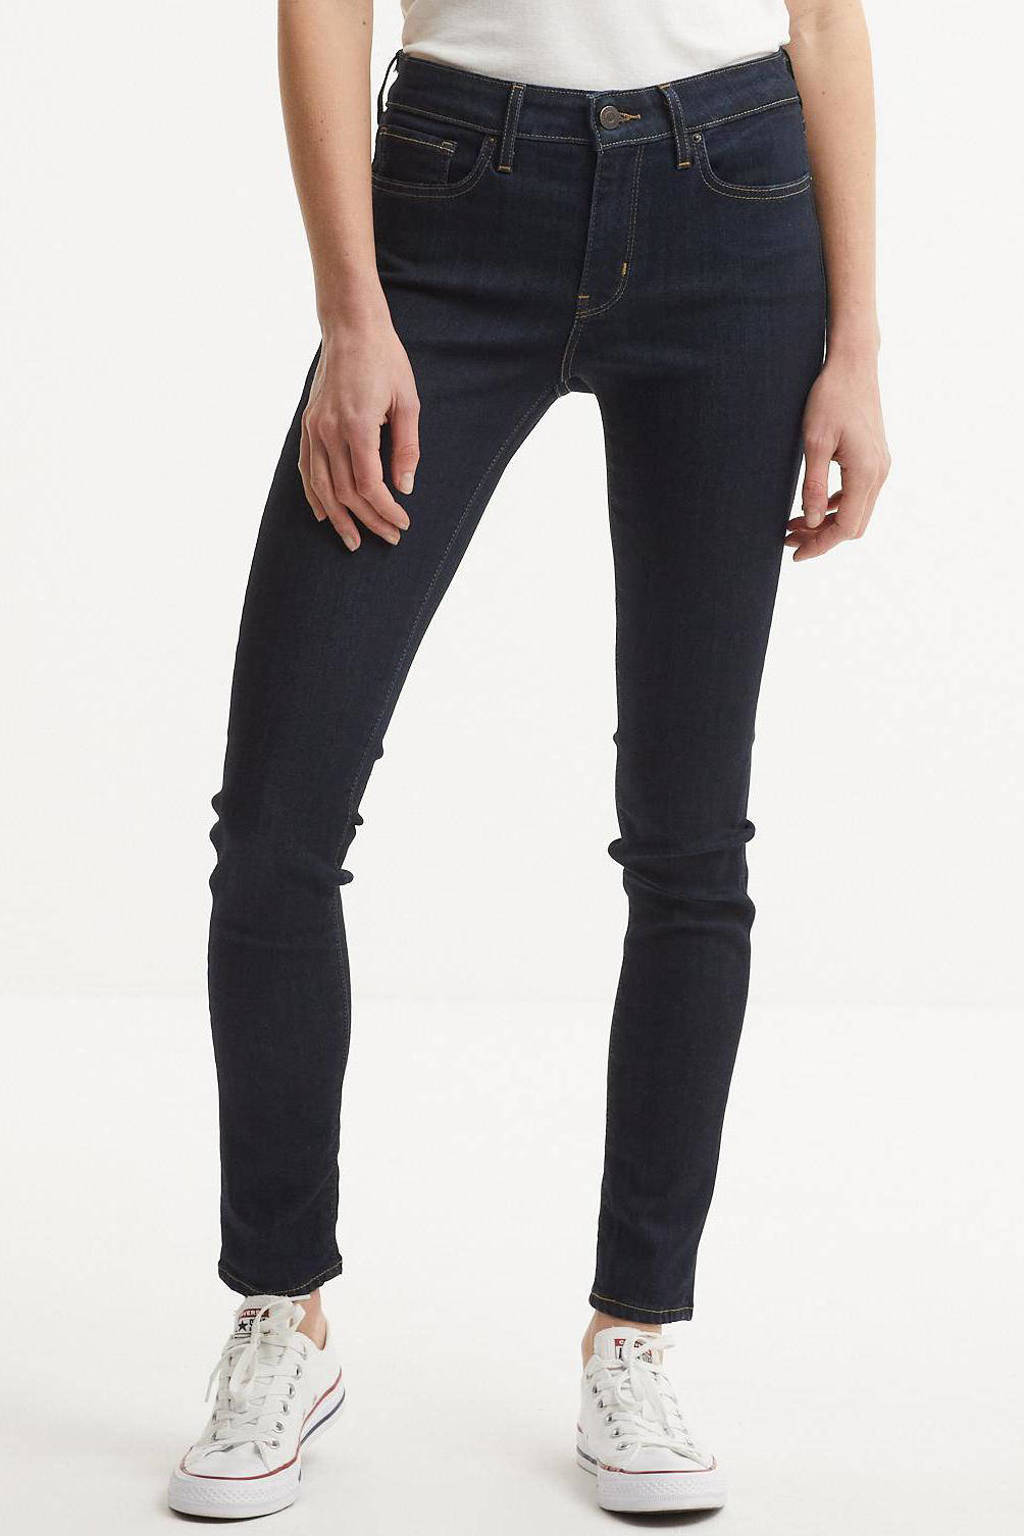 Levi's 711 skinny jeans to the nine, TO THE NINE